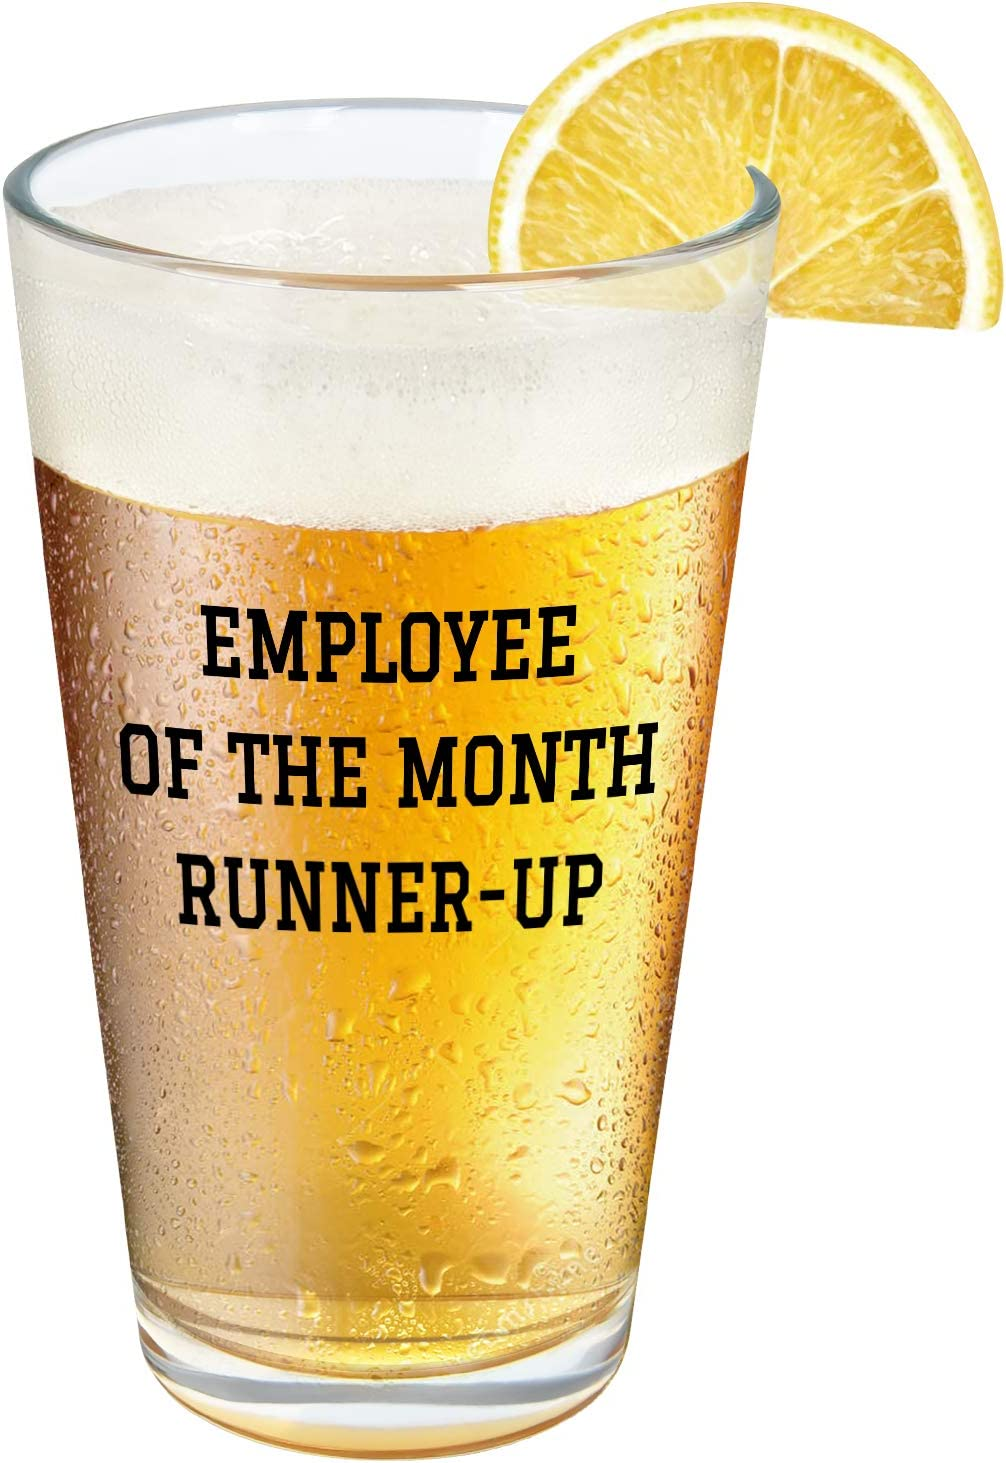 Employee Beer Glass - Employee of the Month Runner Up Beer Pint Glass, 15 Oz Beer Glass for Men Women Boss Employee Coworker Friend Family, Special Office Gift Idea for Bosses Day Christmas Birthday